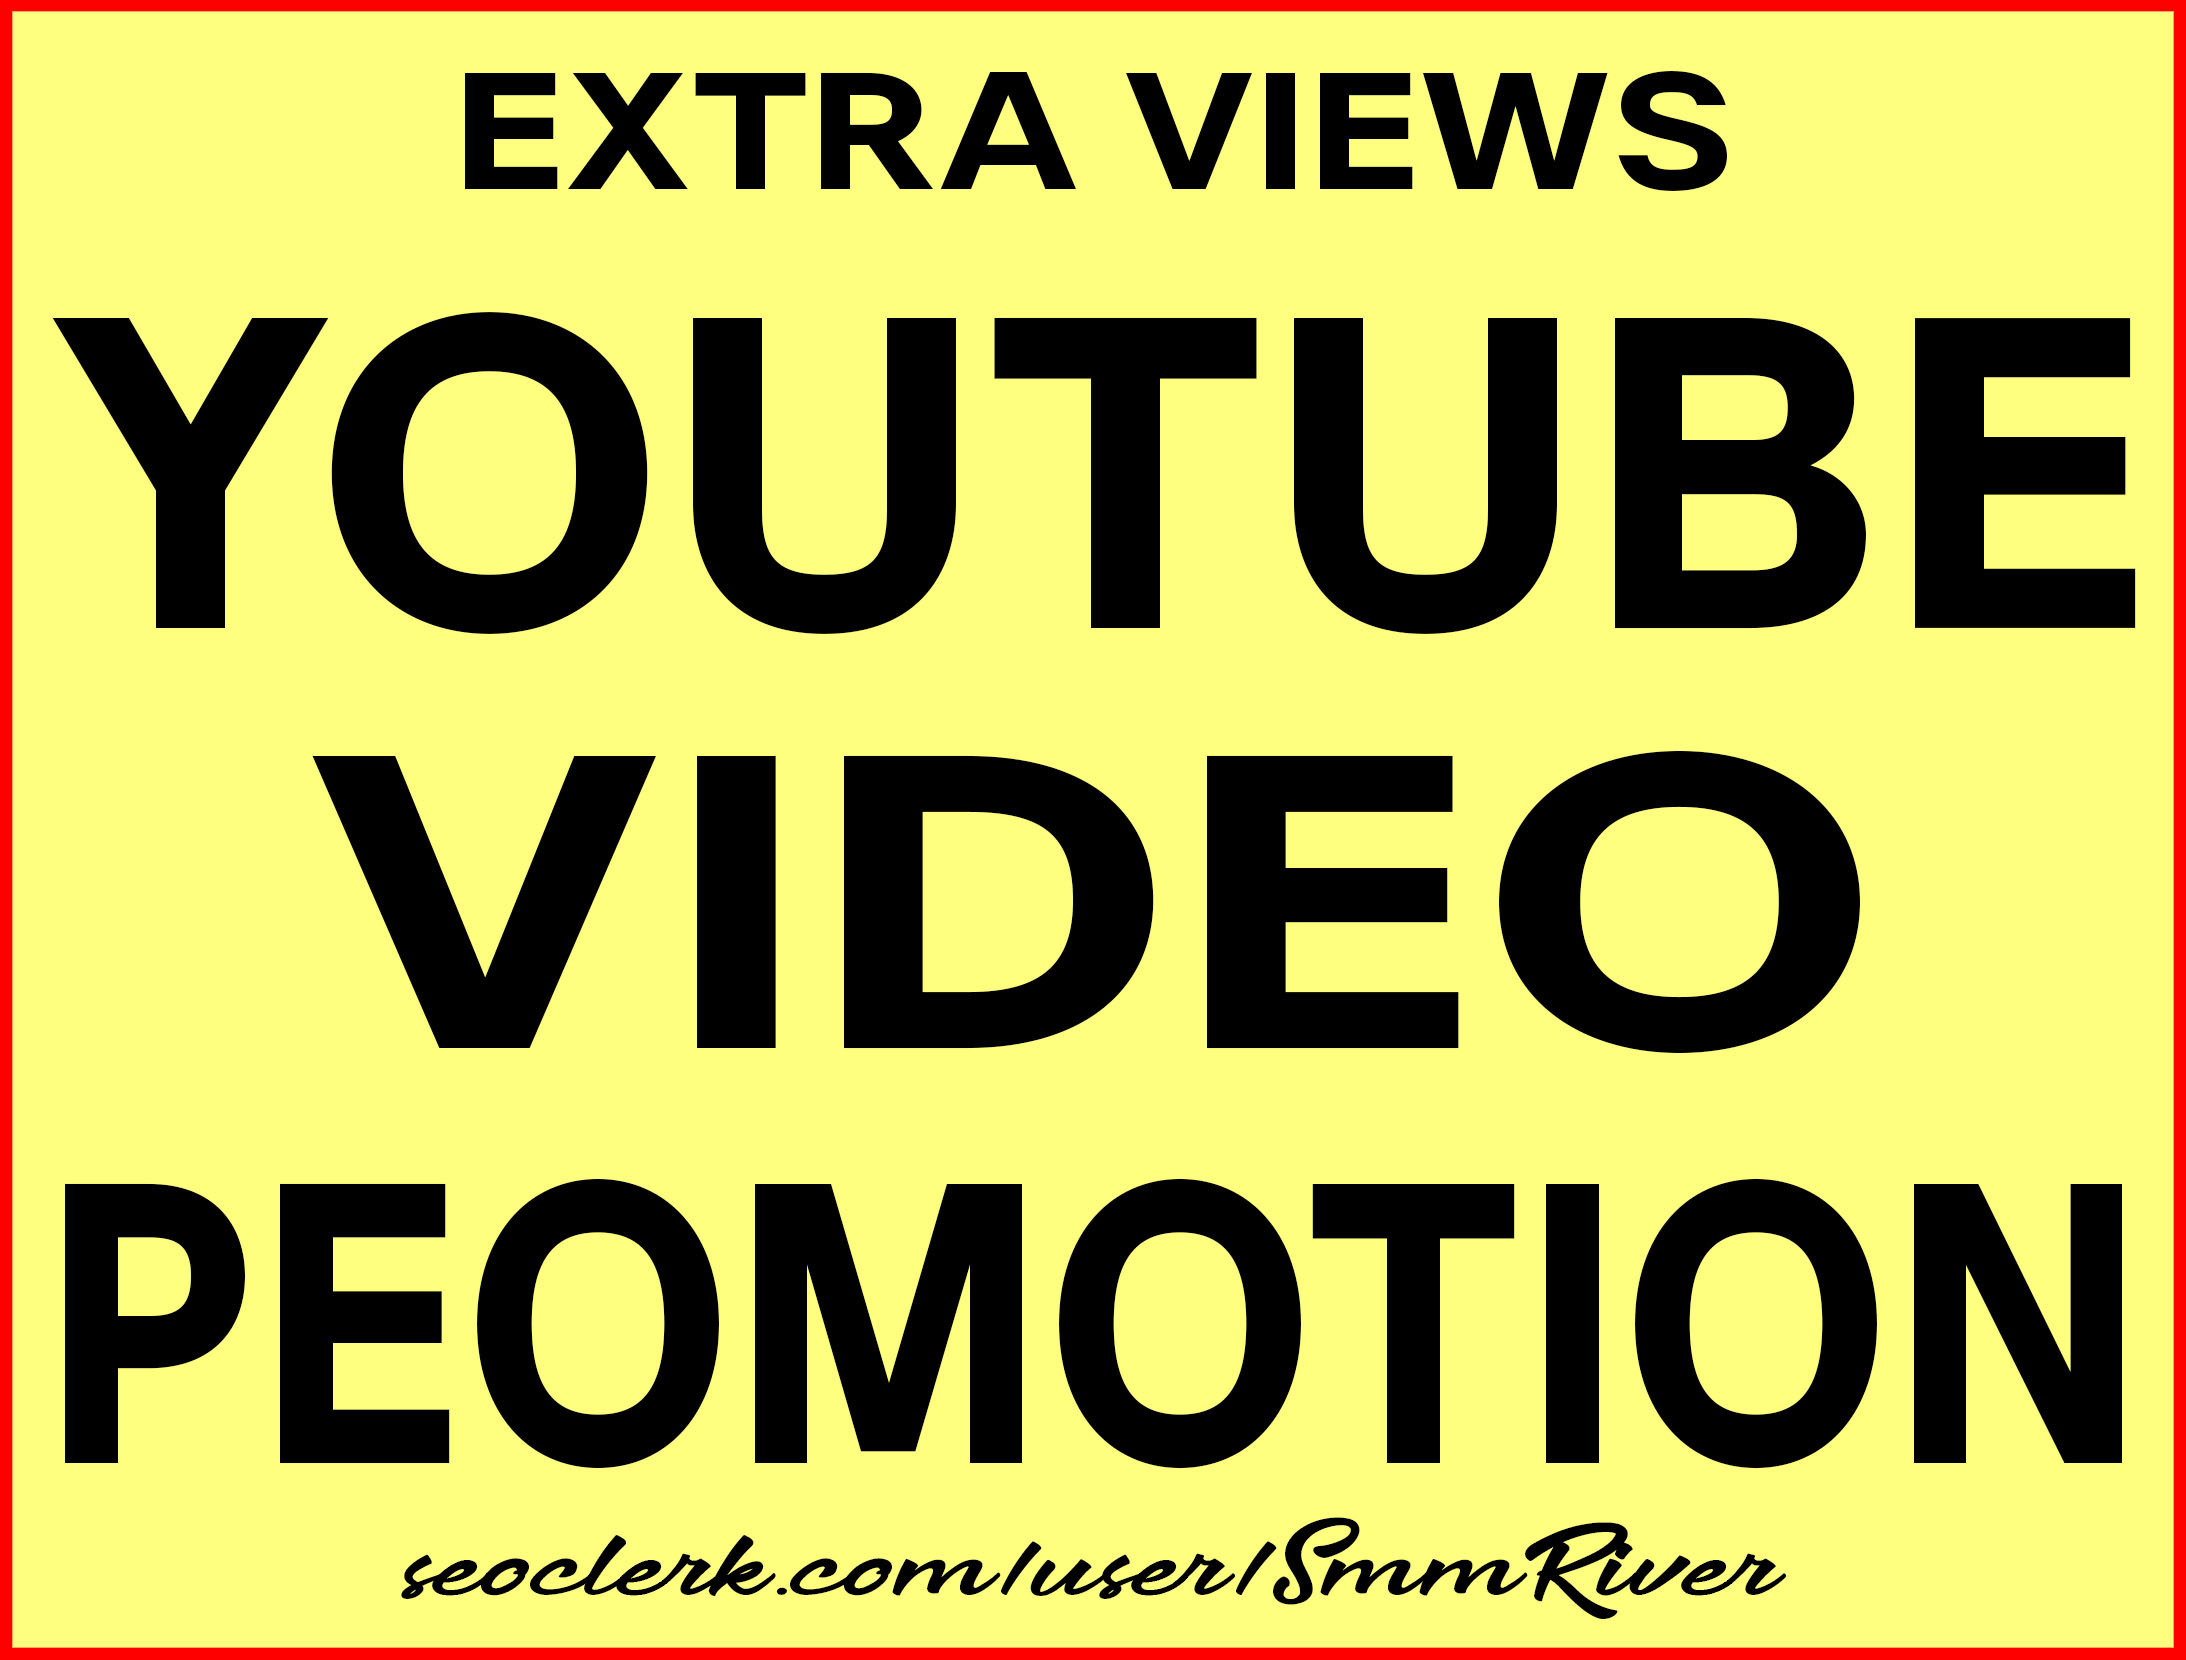 YouTube Video Promotion Service Good For Ranking